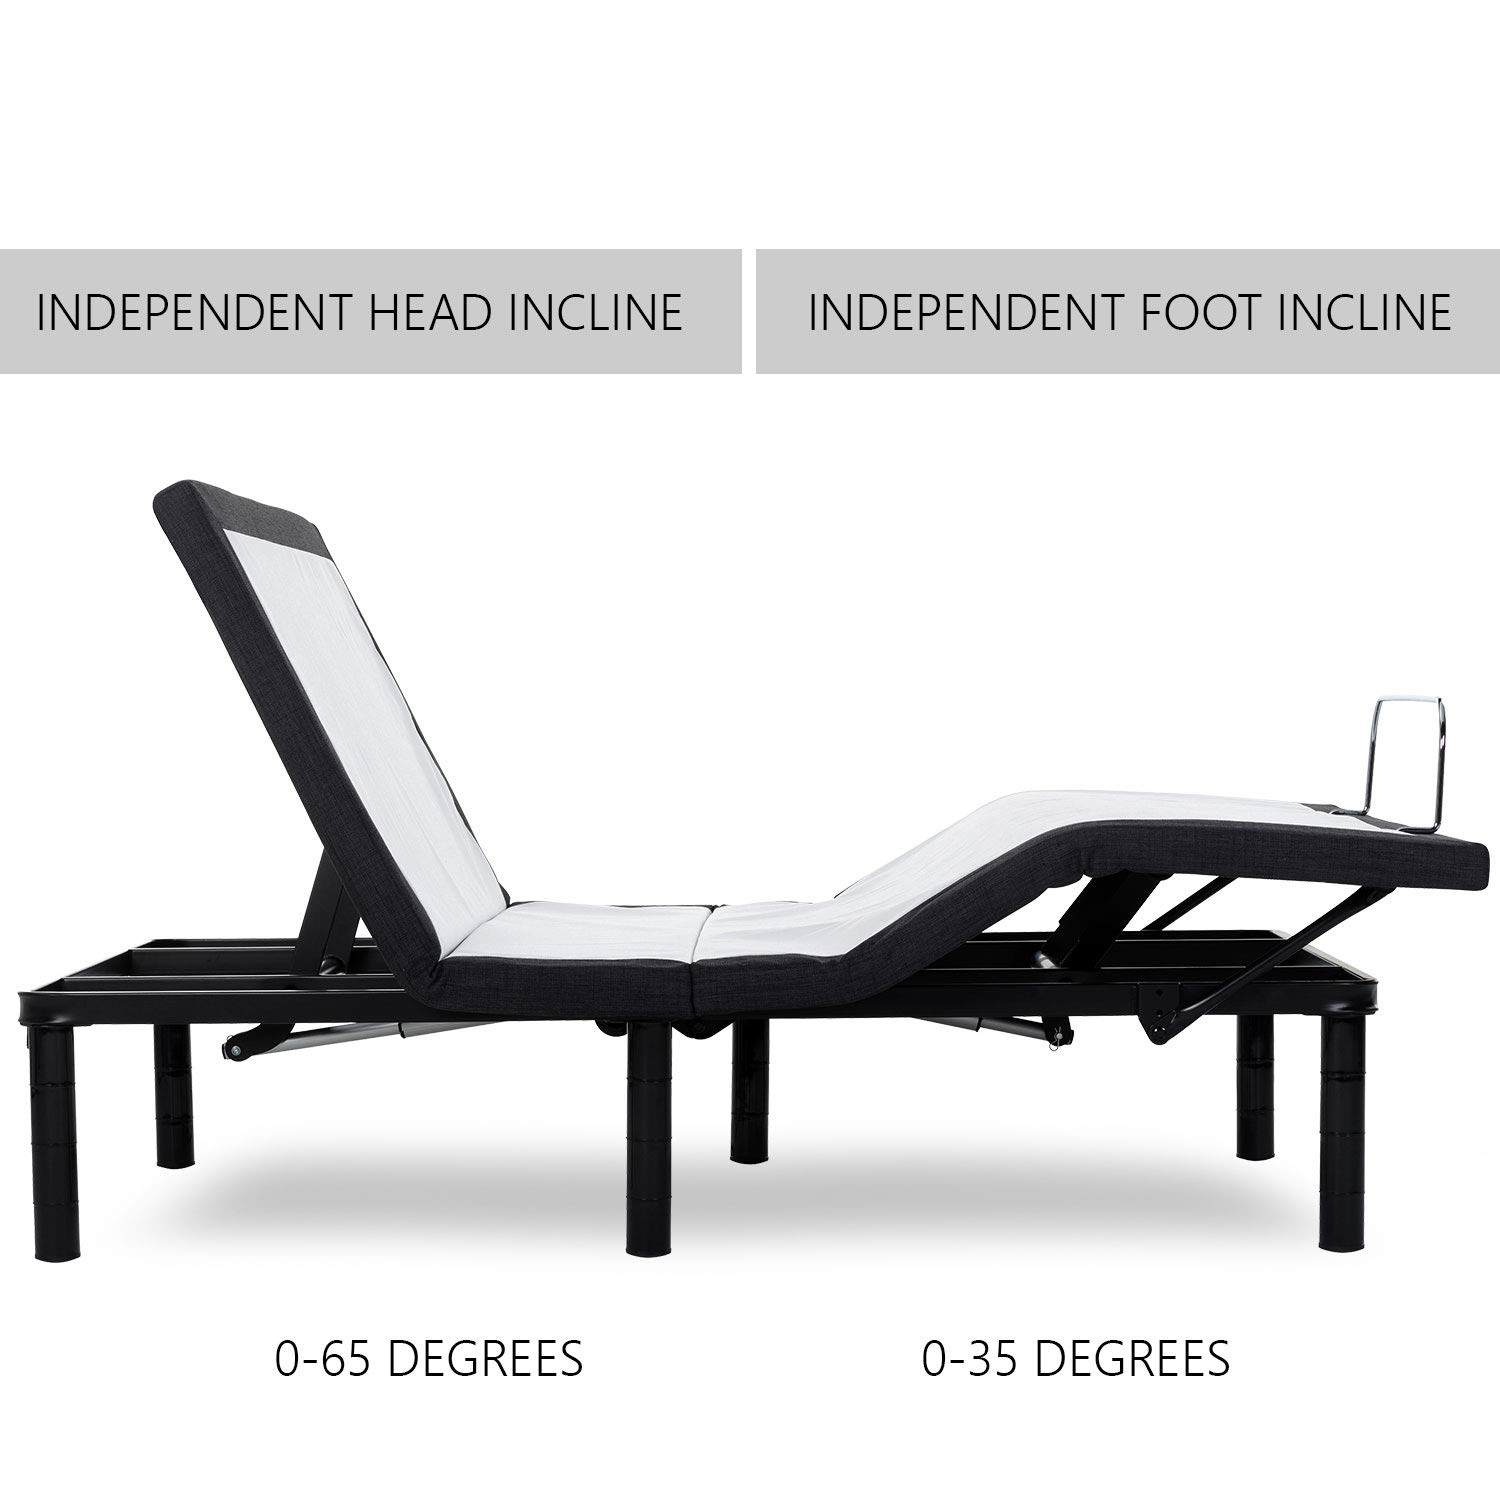 zzZenSleep Adjustable Bed Base Frame with Wireless Remote Independent Head and Foot Incline, Fast No Tools Required Assembly 10 Year Limited Warranty Twin XL